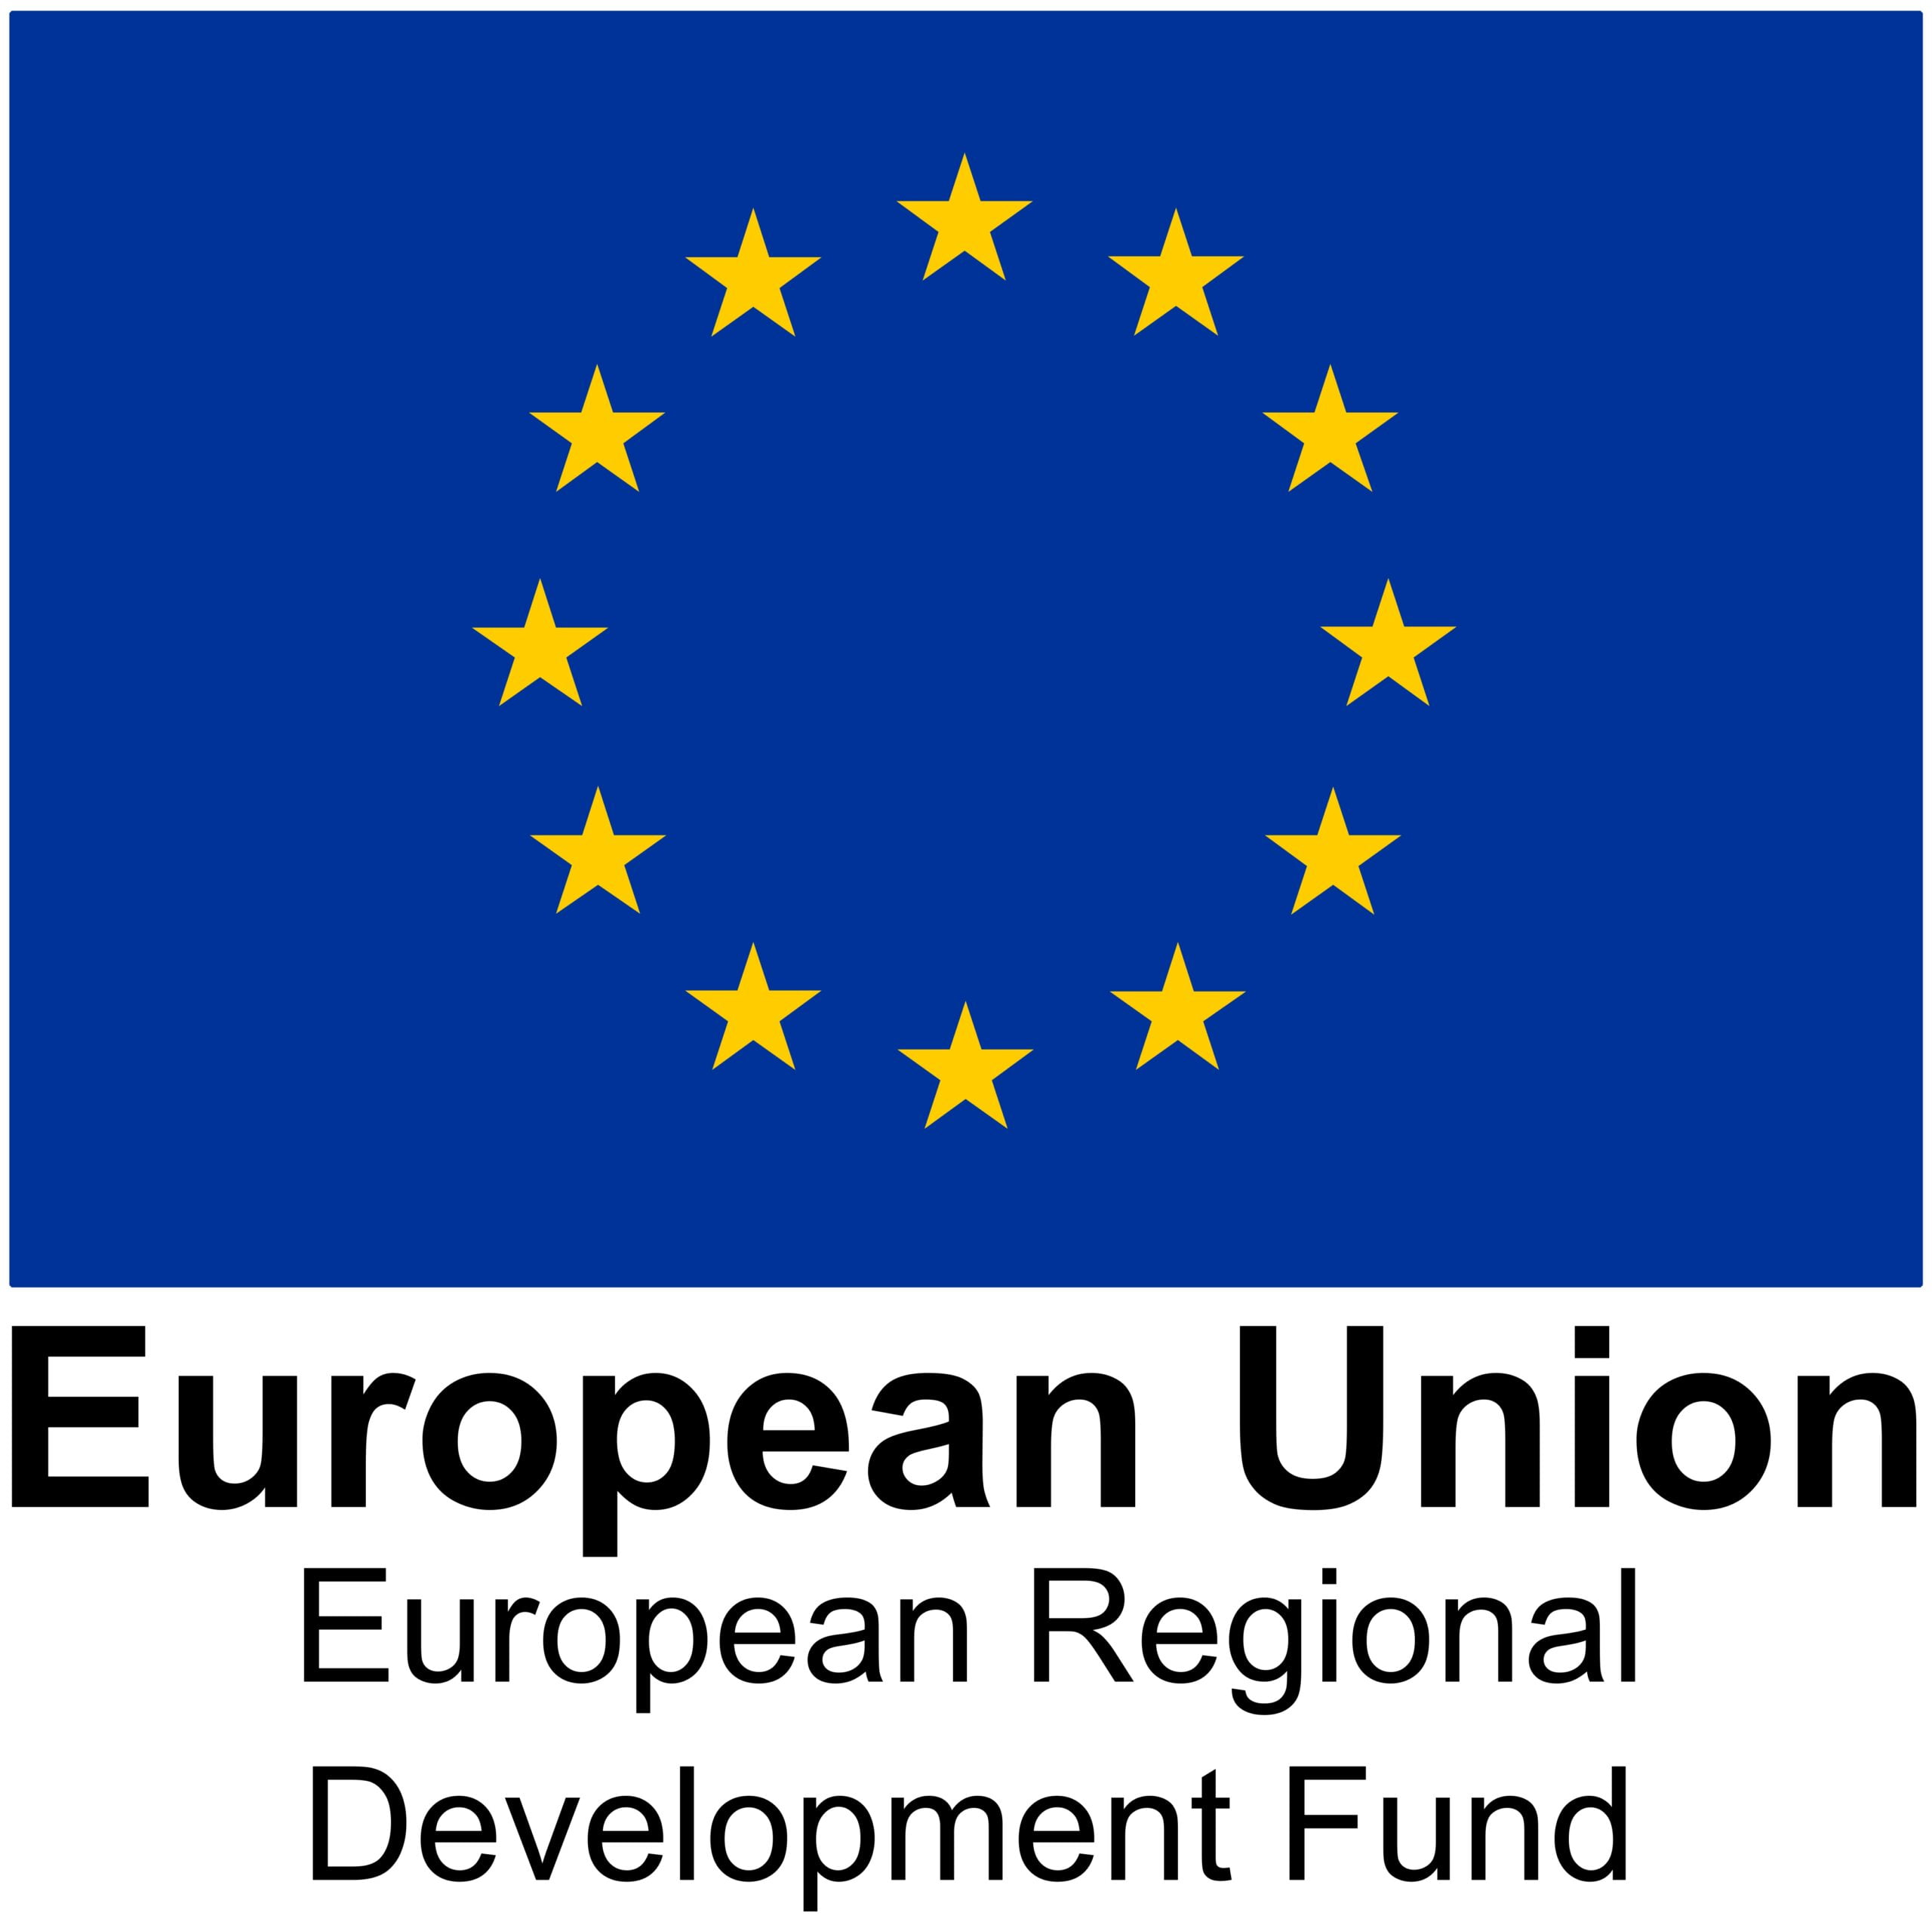 Durham Business Opportunities Programme (DBOP) is a European Regional Development Fund (EDRF) programme offering business support to SMEs in County Durham.